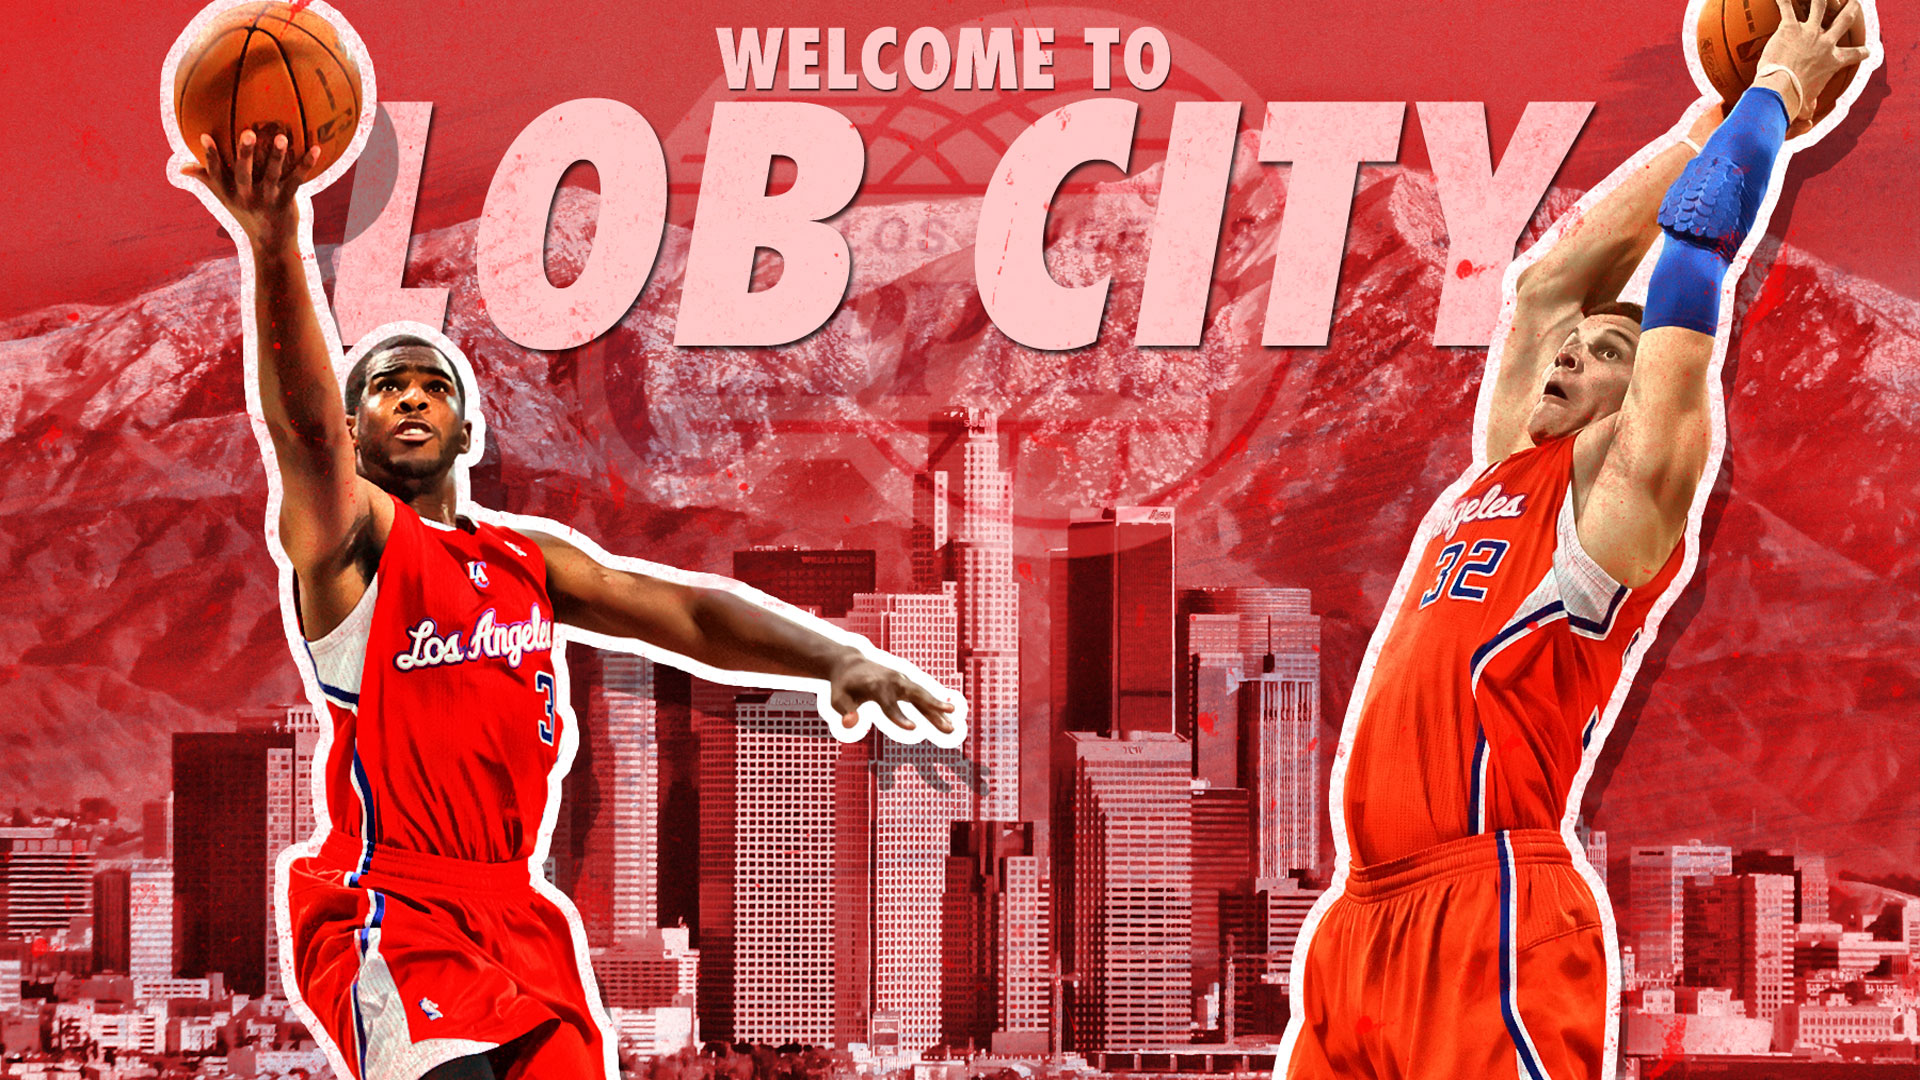 Los Angeles Clippers Wallpapers 2012 Welcome To Lob City Wallpaper